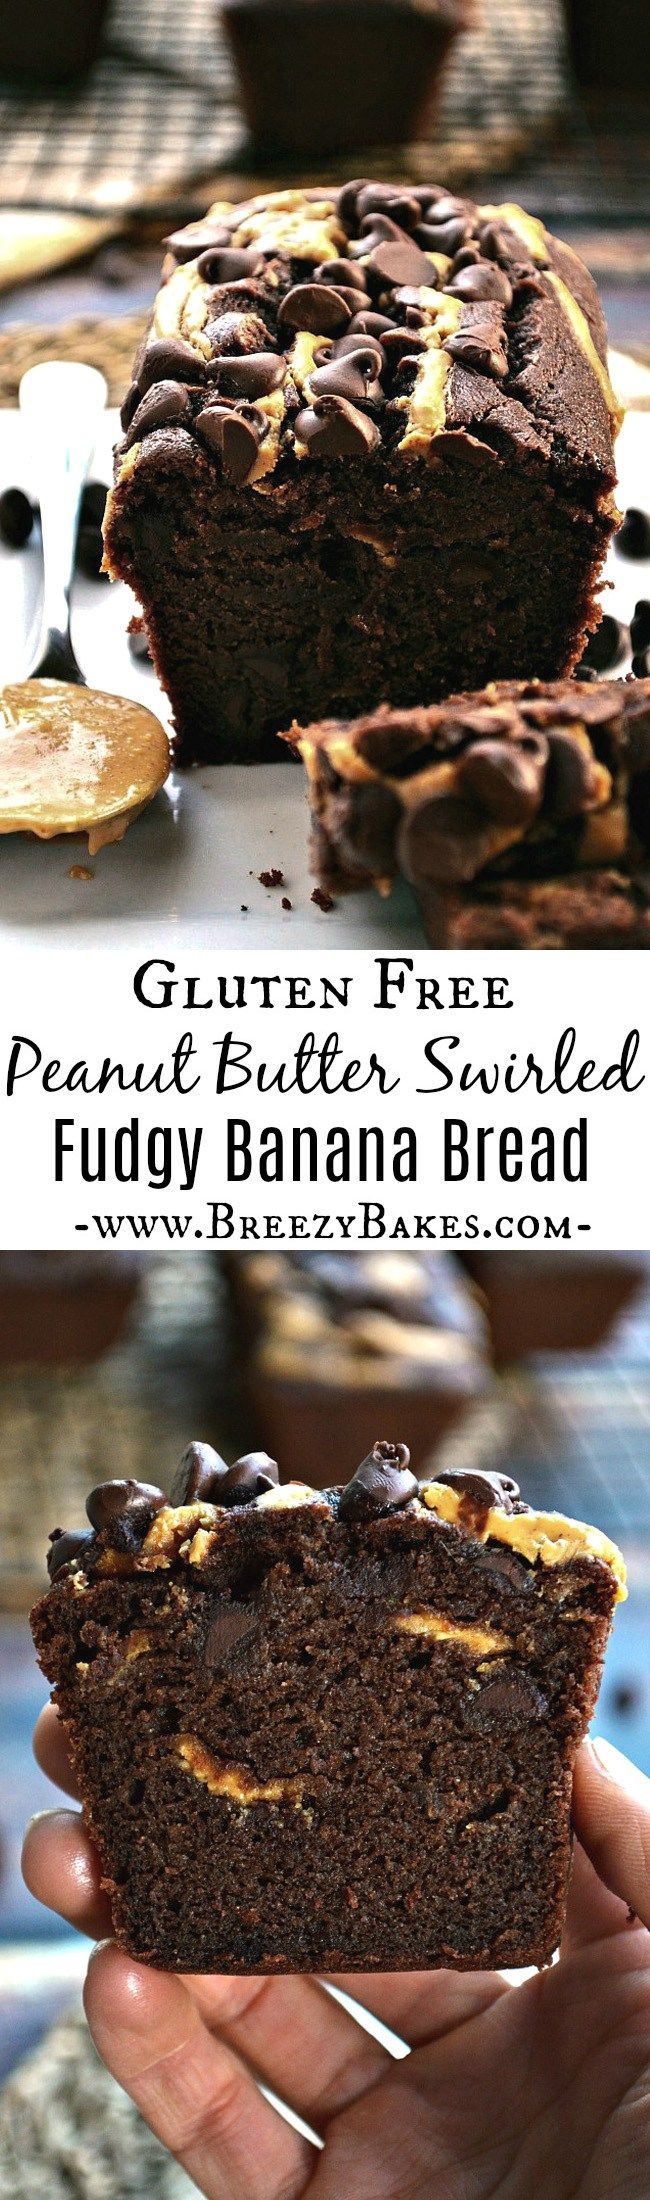 Indulge in this Gluten Free Chocolate Banana Bread with Peanut Butter Swirl for your next sweet breakfast or afternoon snack. It's perfectly fudgy with pockets of melted chocolate chips and a drizzle of peanut butter on top.